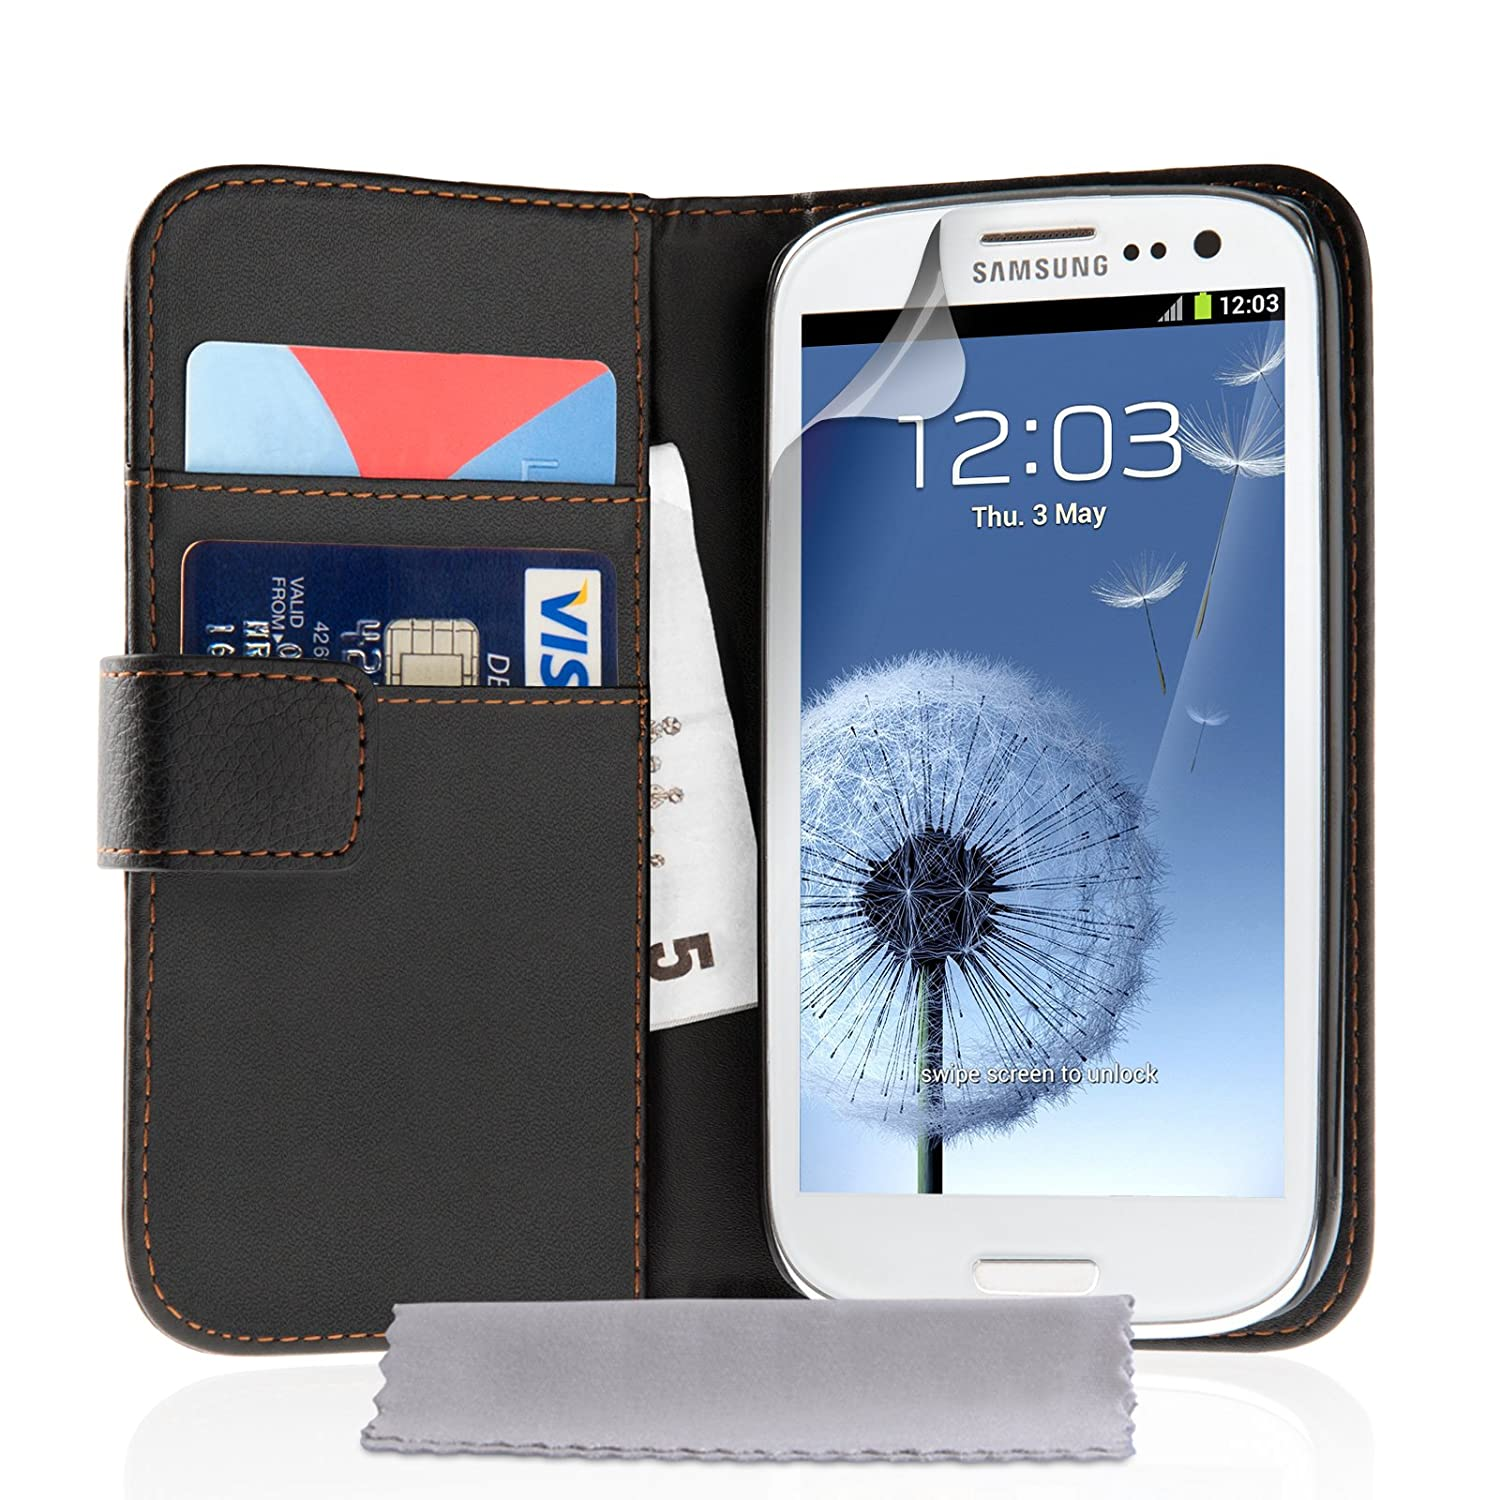 Lcd screen protector guard for samsung galaxy s3 i9300 galaxy s iii - Amazon Com Samsung Galaxy S3 Case Black Leather Wallet Cover With Screen Protector Cell Phones Accessories